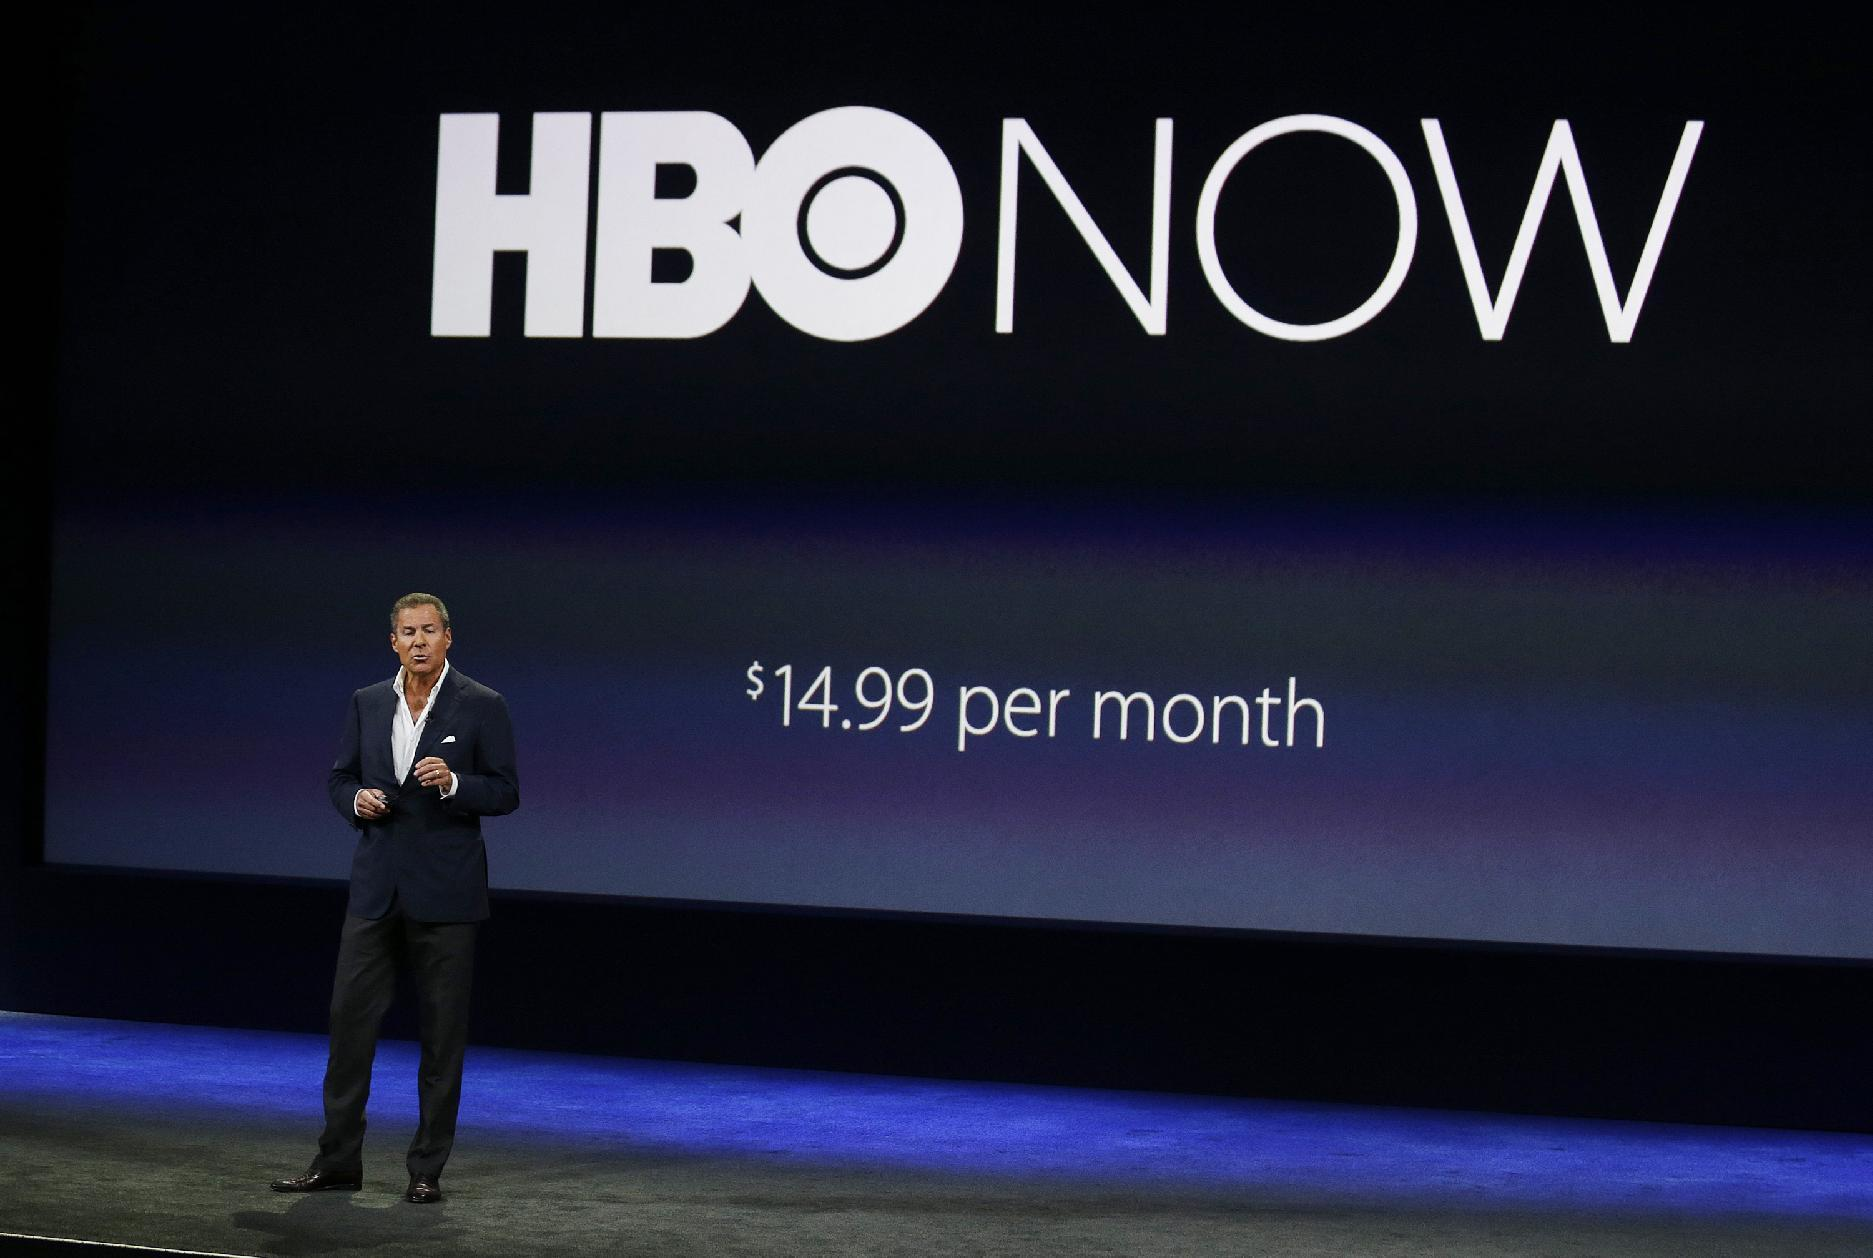 HBO Now has 800,000 paying subscribers since April launch